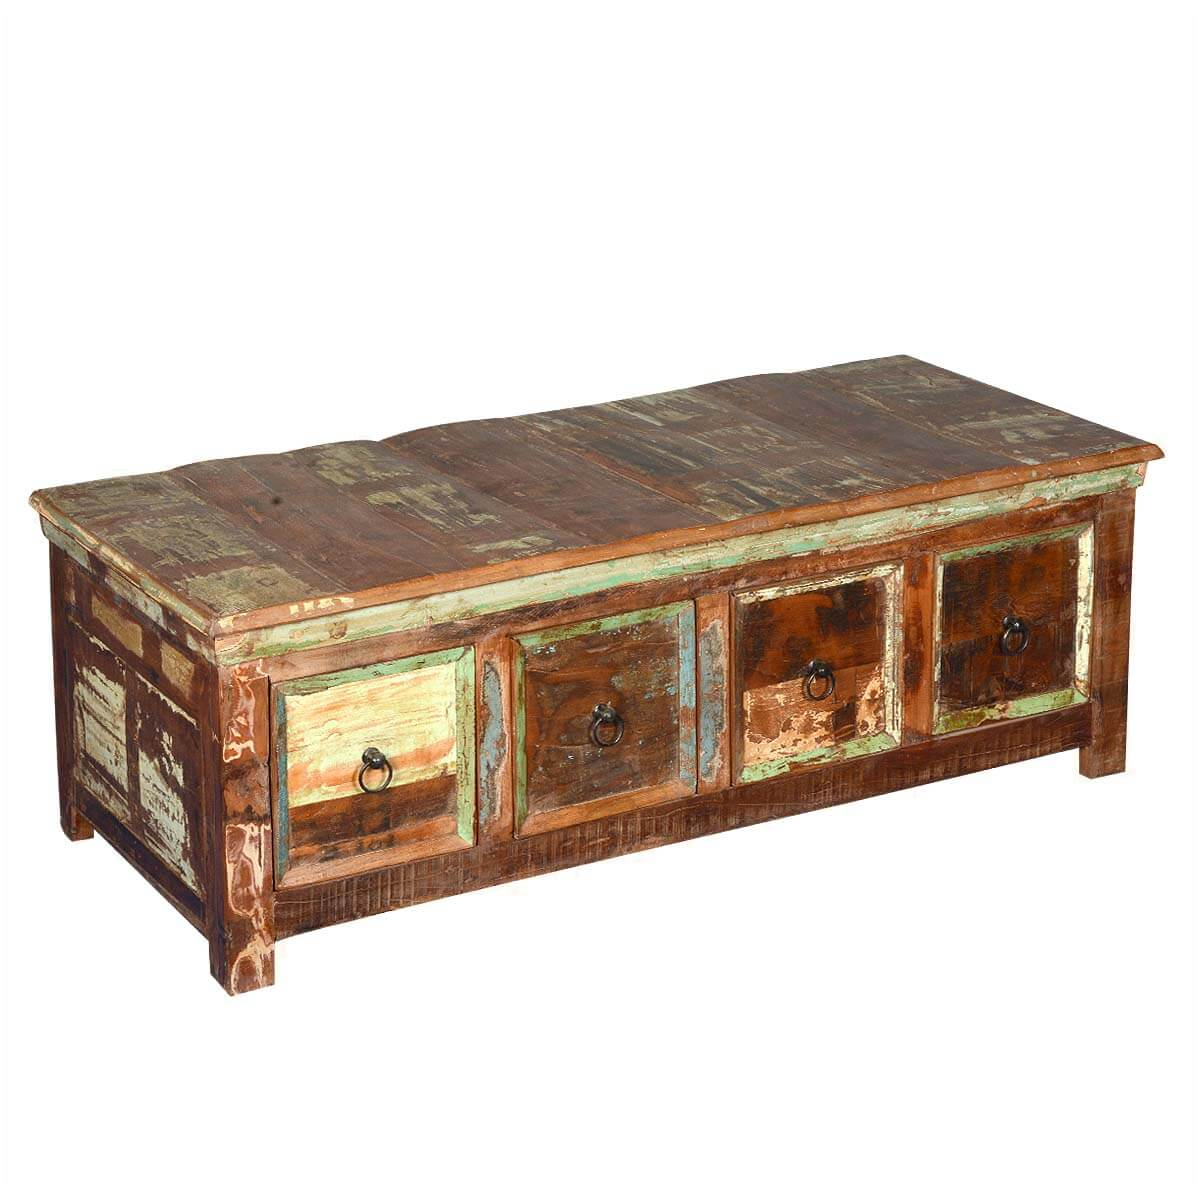 Wood Coffee Table With Storage Rustic Reclaimed Wood Coffee Table With Storage Drawers